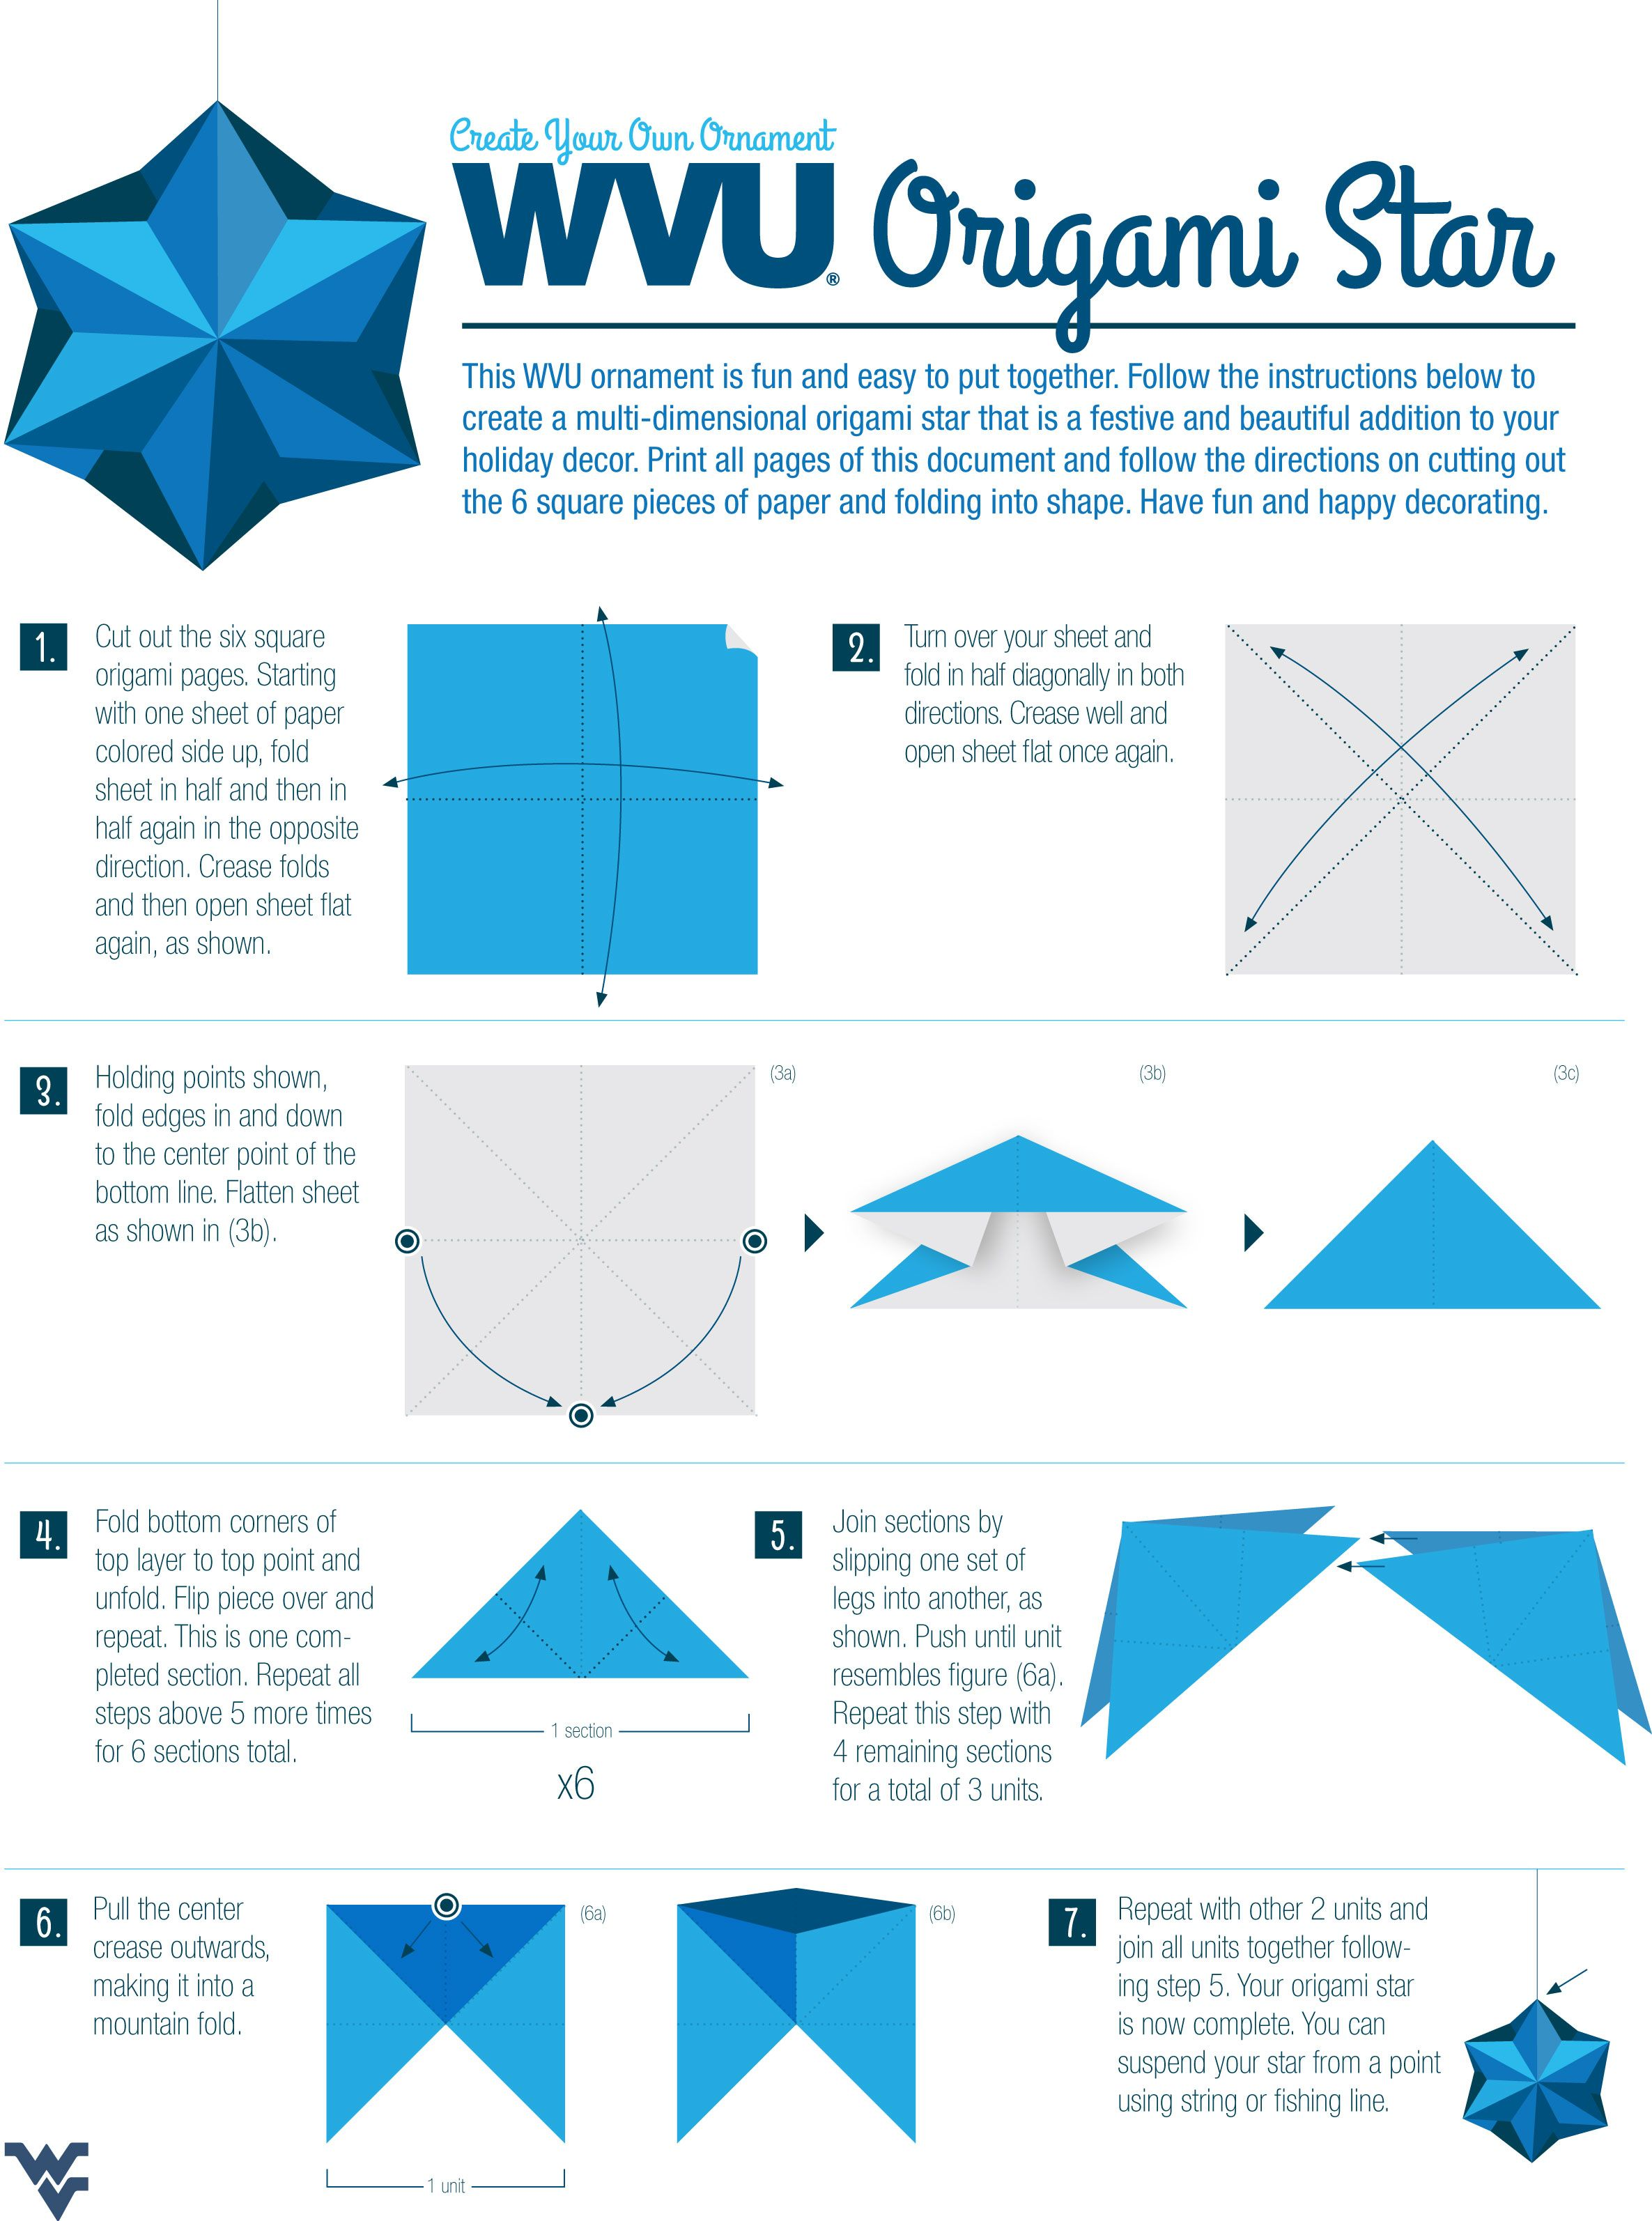 Download Instructions For Making A Wvu Origami Star